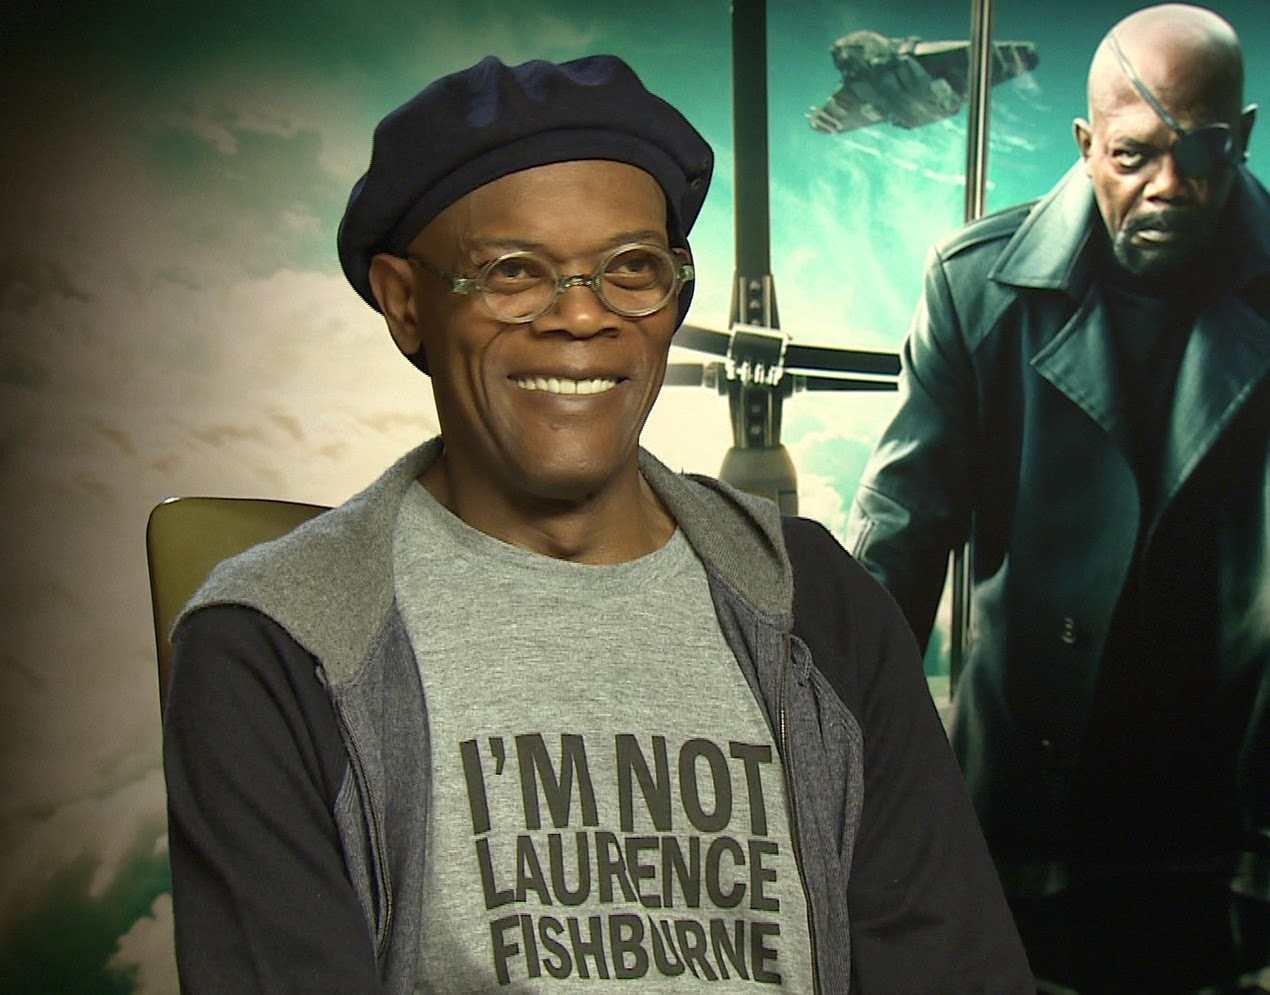 Samuel L. Jackson's Awesome T-Shirt